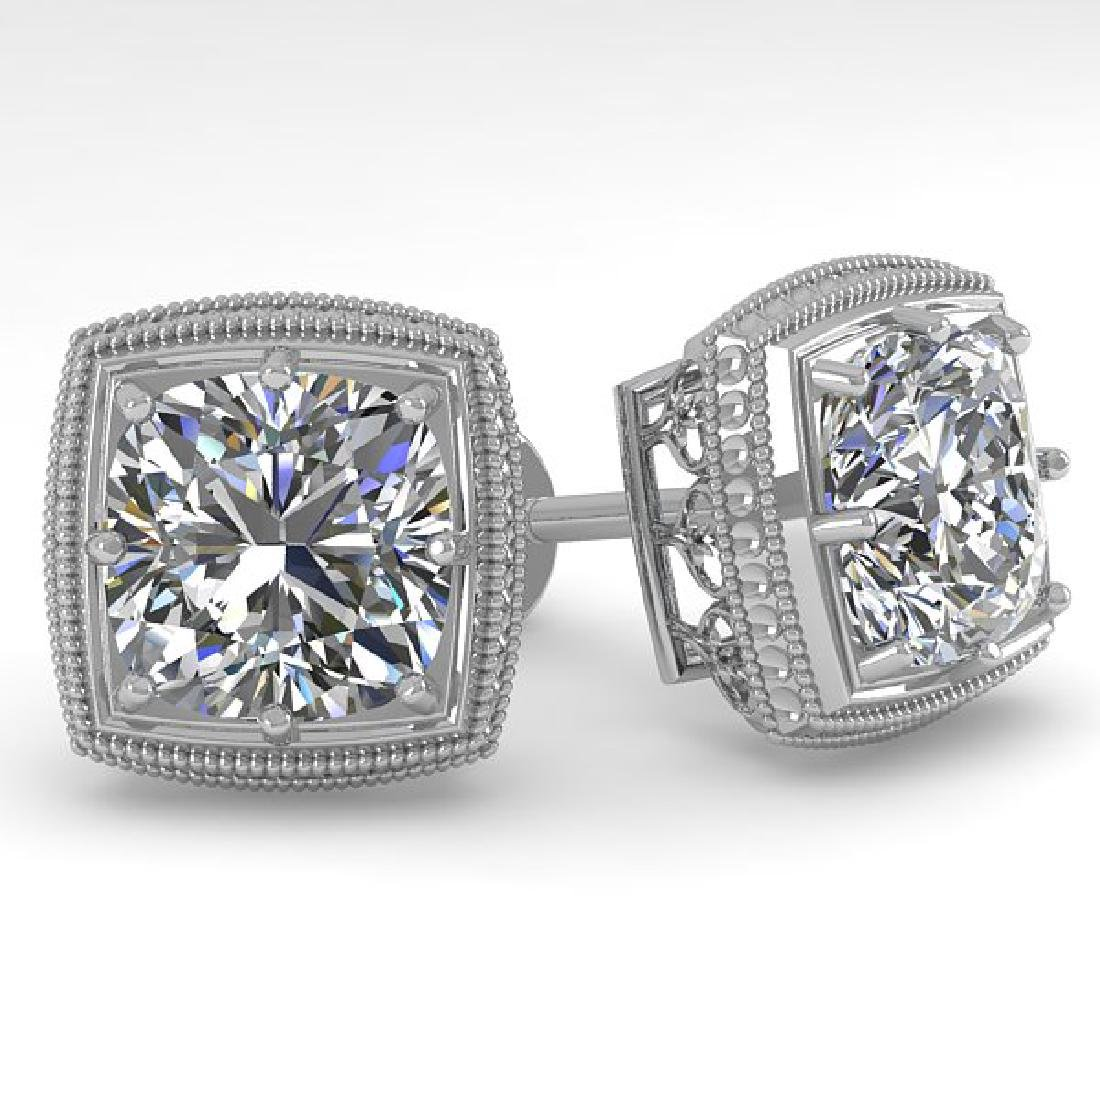 2 CTW VS/SI Cushion Cut Diamond Stud Earrings Deco 18K